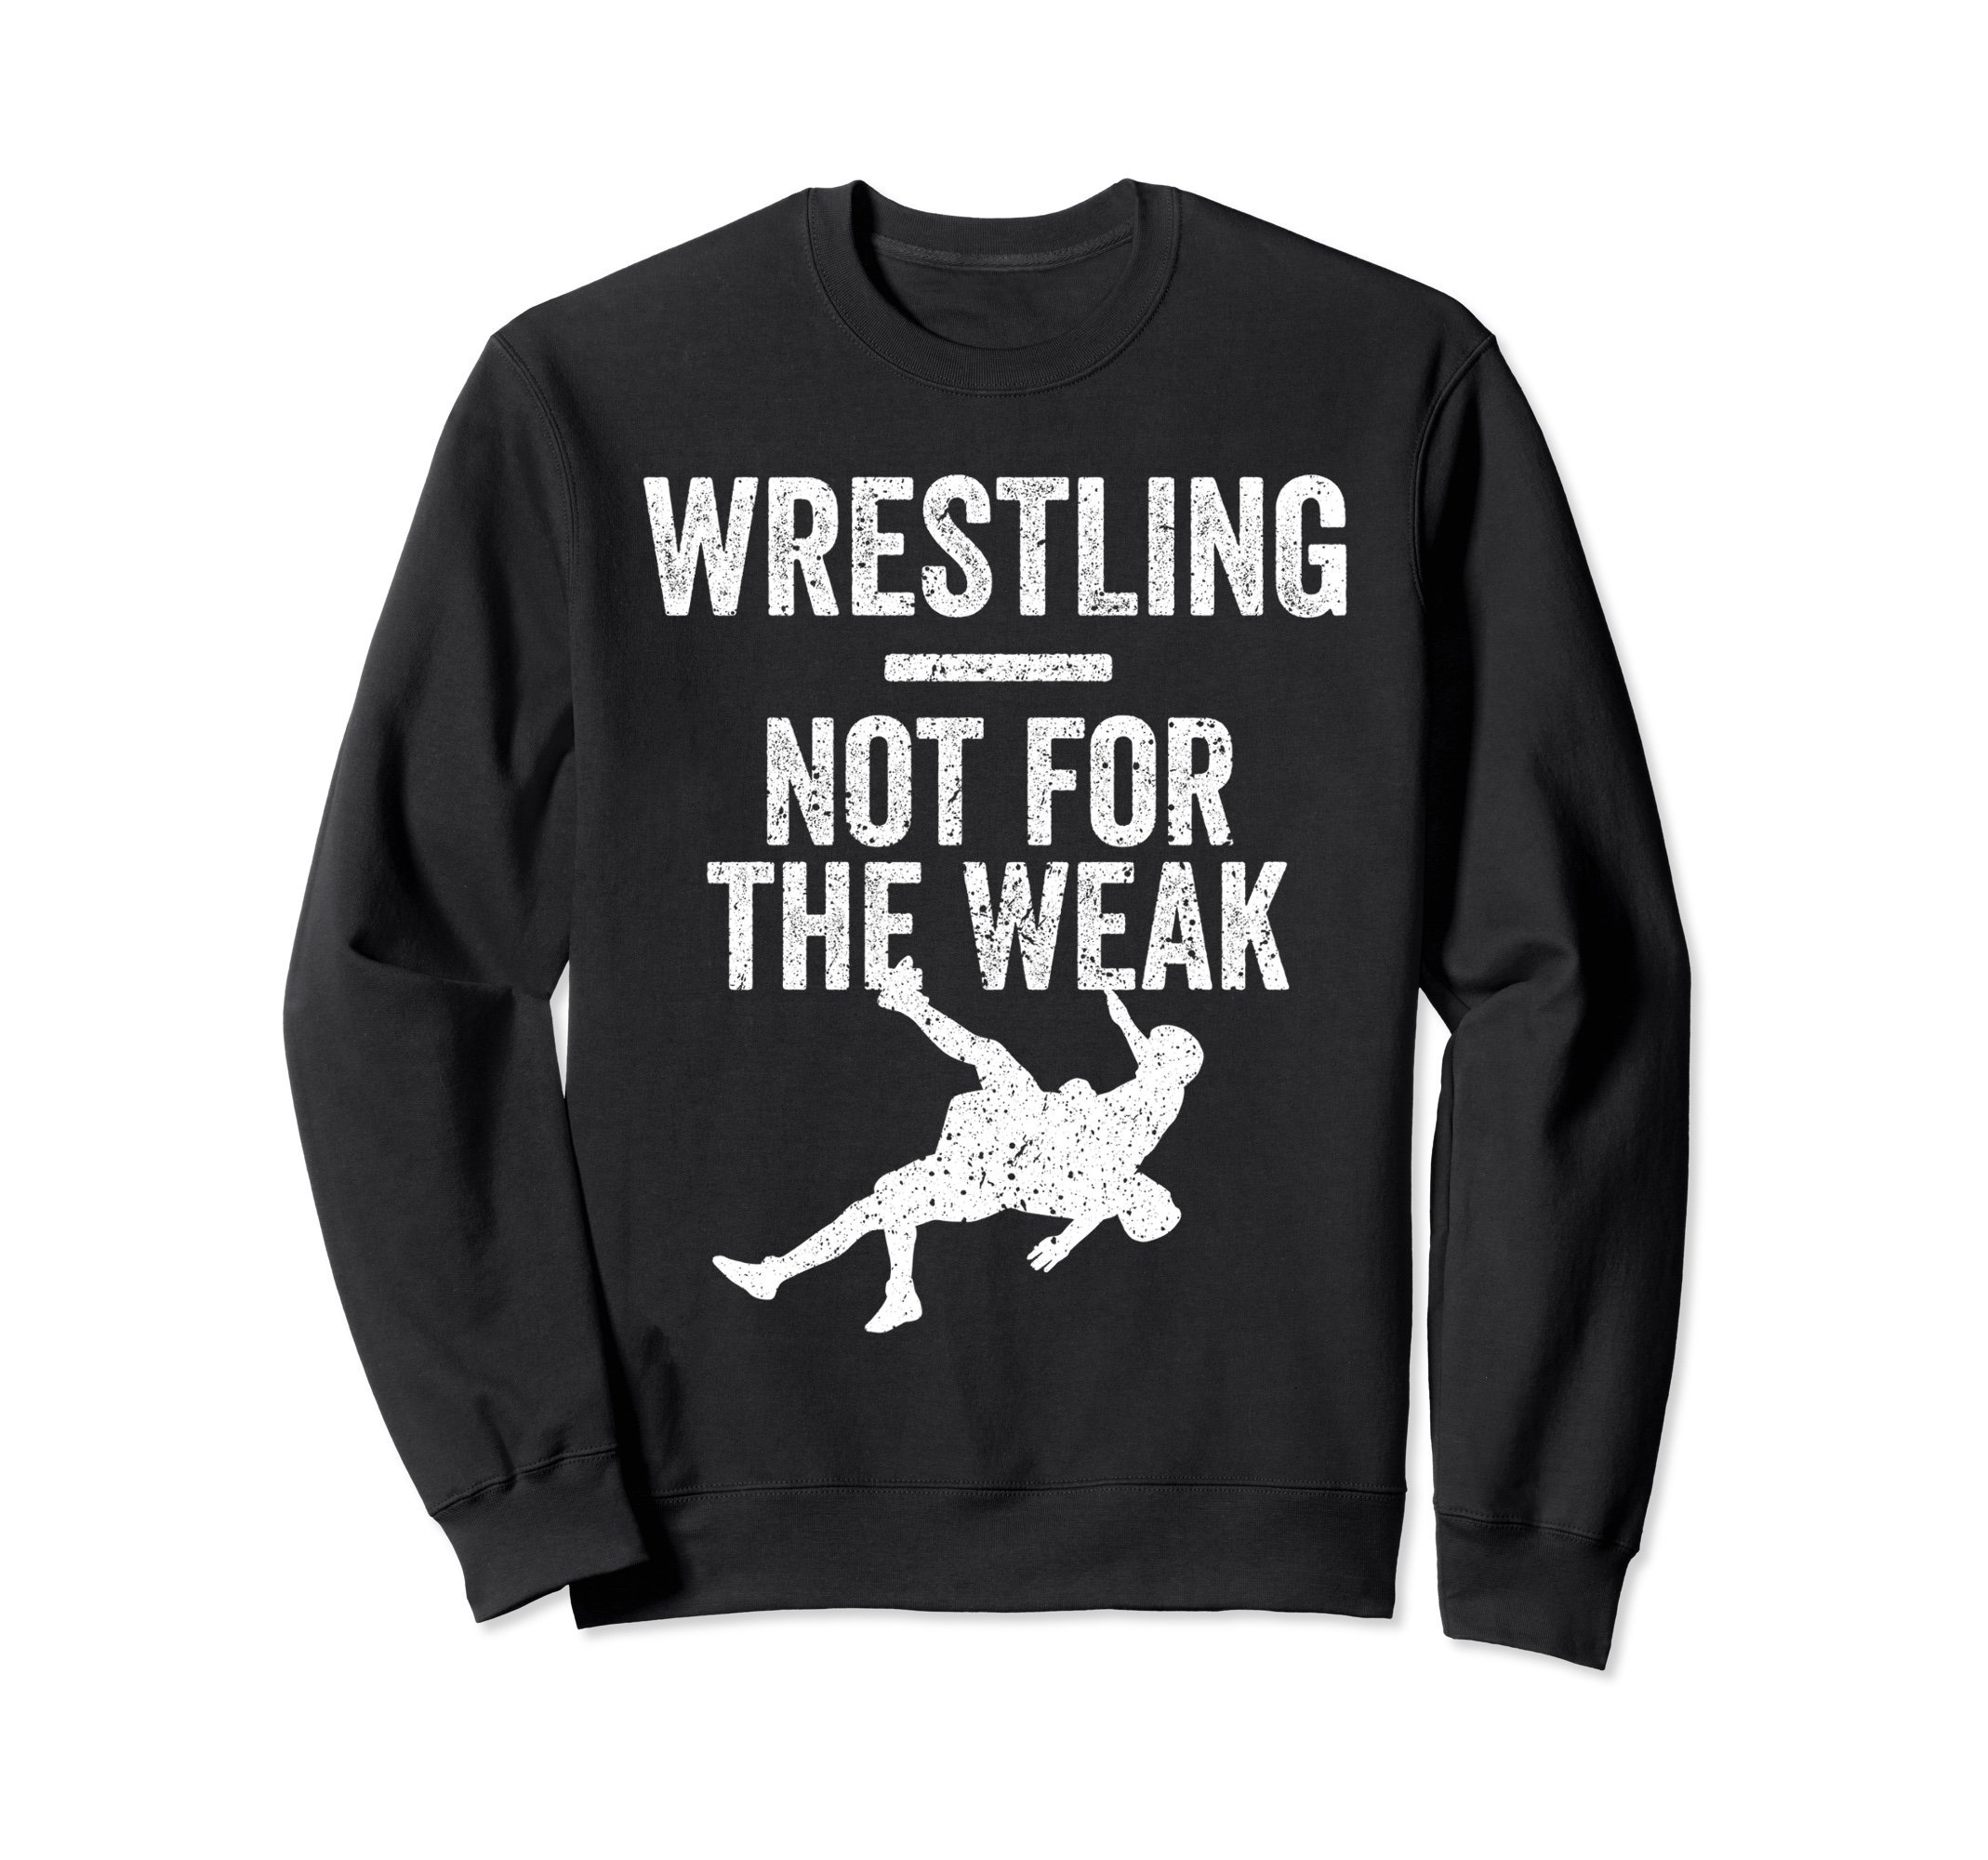 Unisex Not For The Weak Wrestling Sweatshirt for Wrestlers, White 2XL Black by Wrestling Shirts and Wrestling Shoes